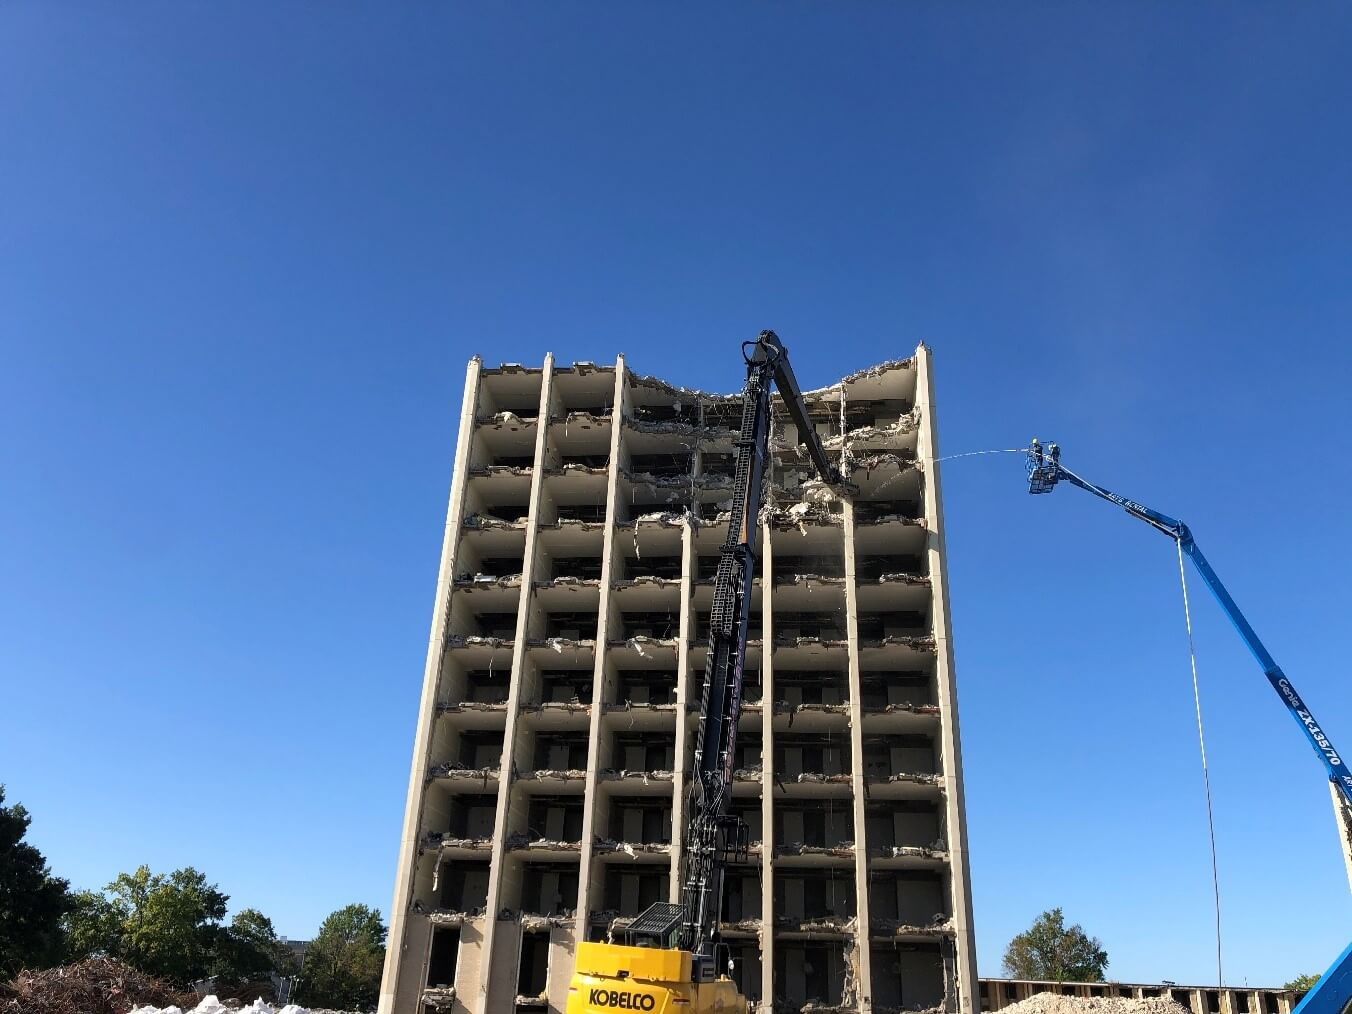 Kirwan Tower at the University of Kentucky (UK) in Lexington, kentucky university construction and demolition